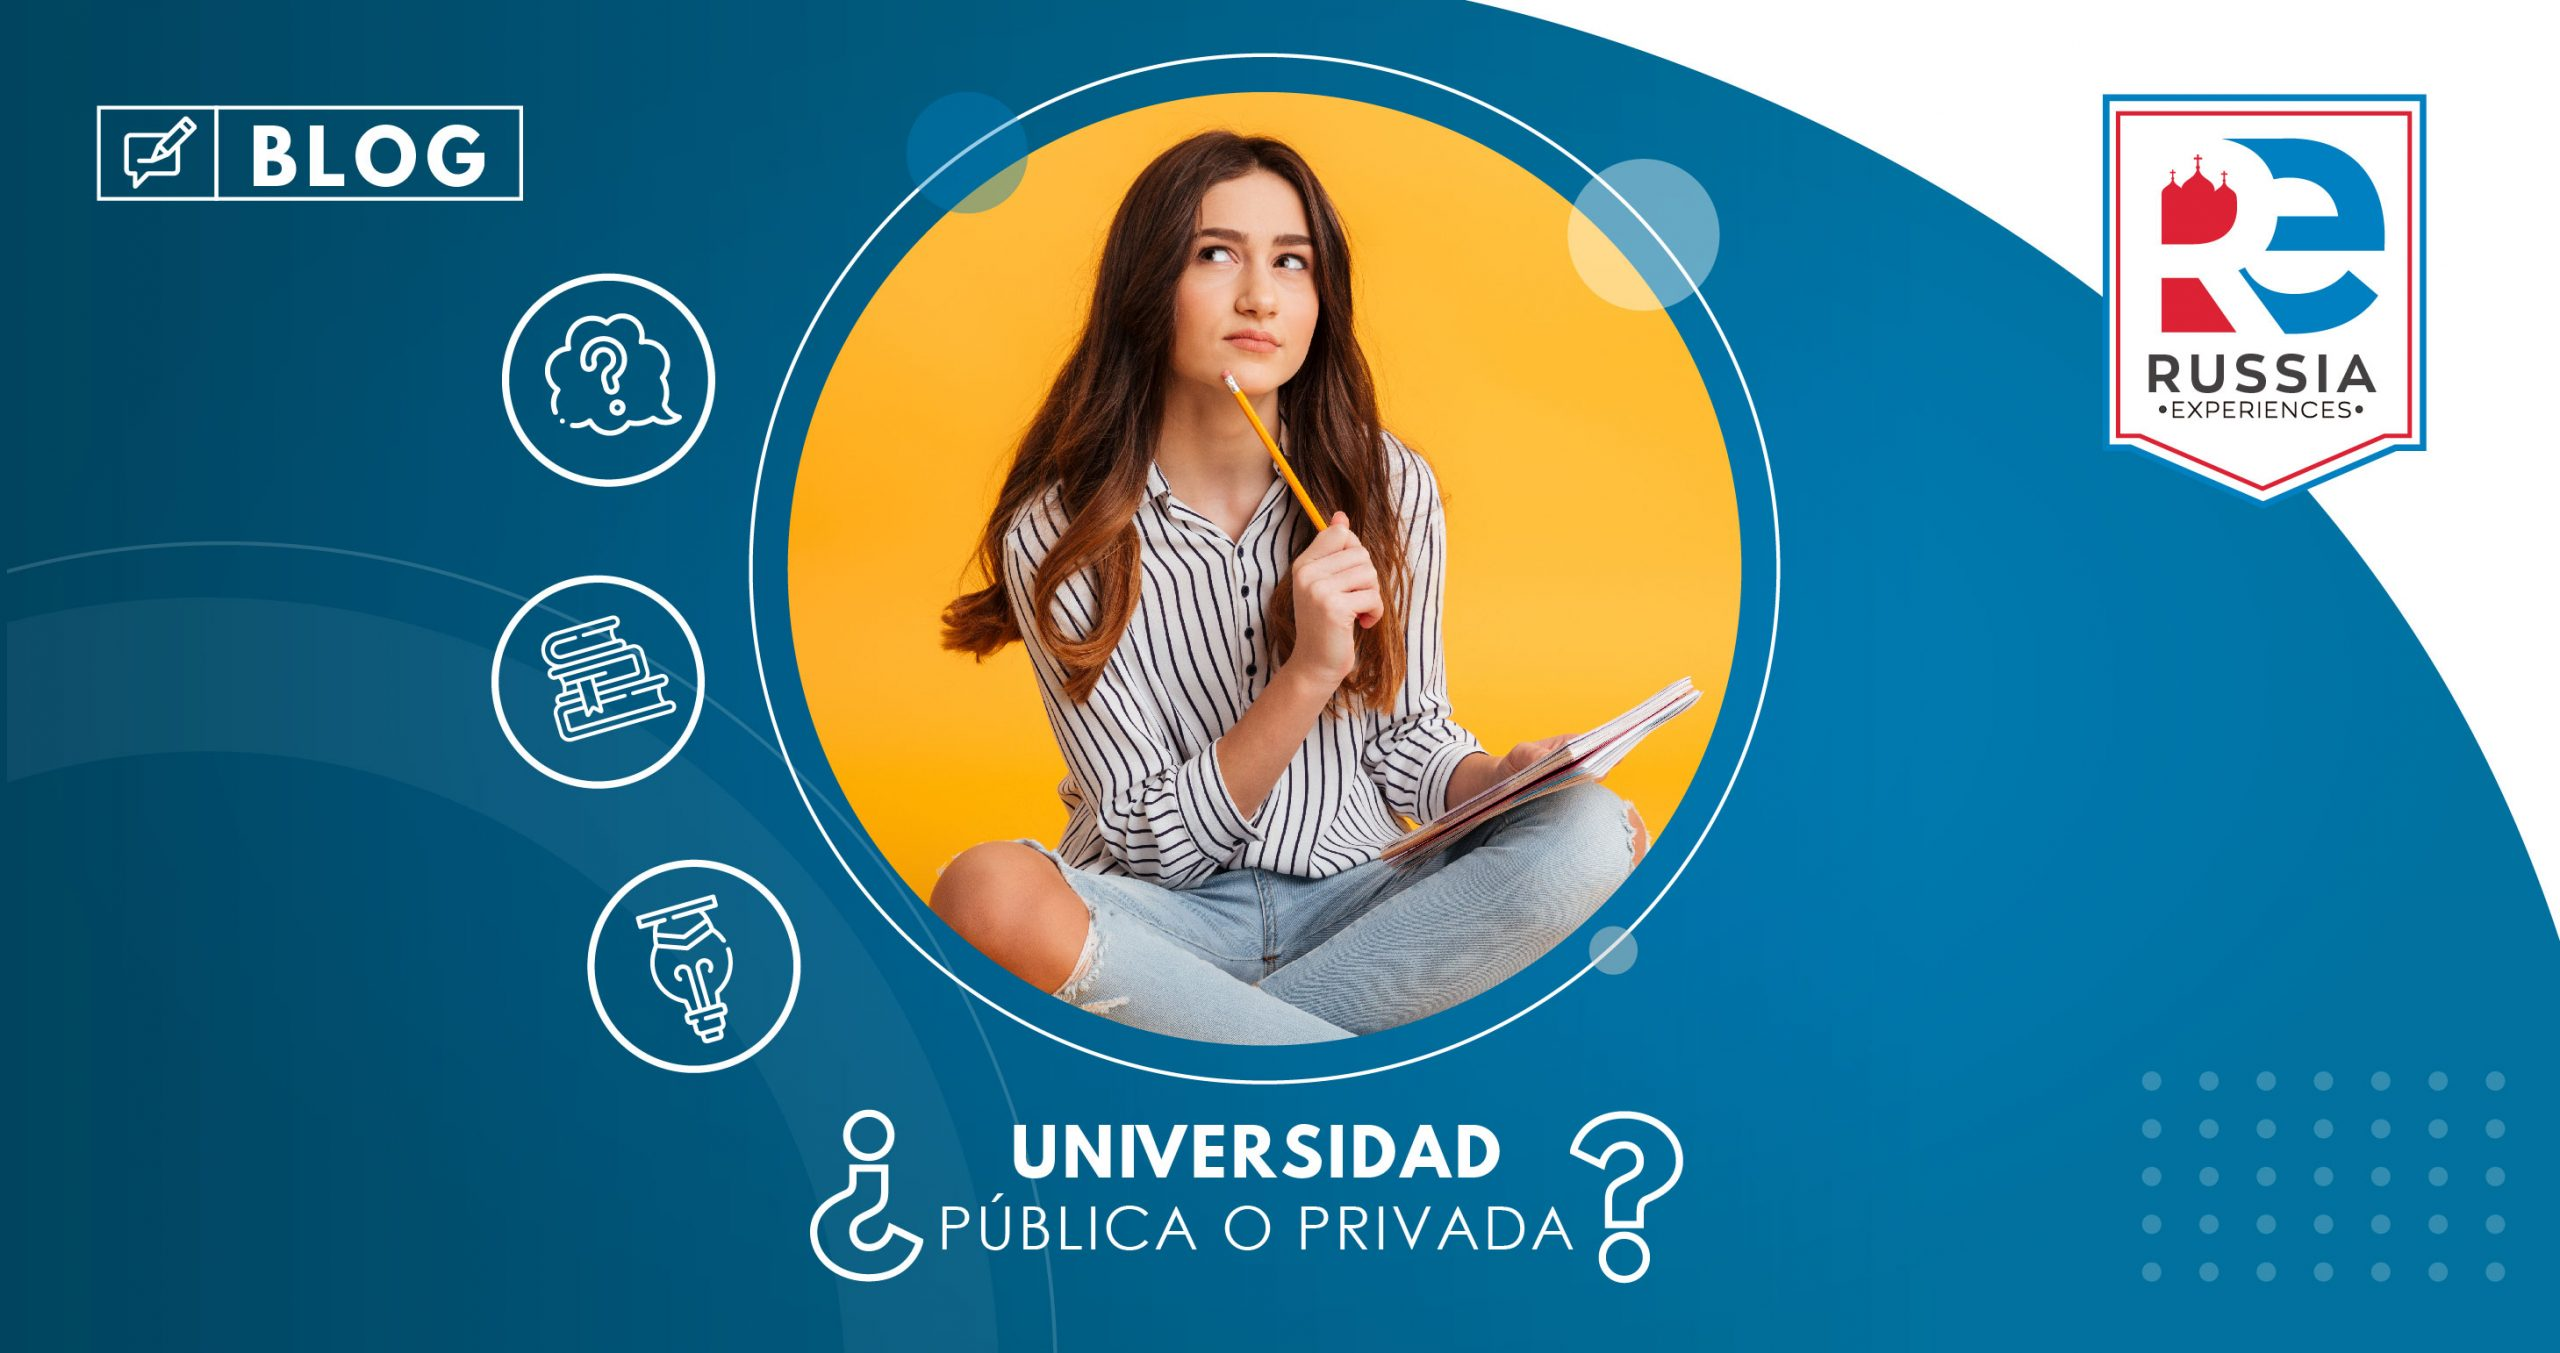 Universidad pública o privada